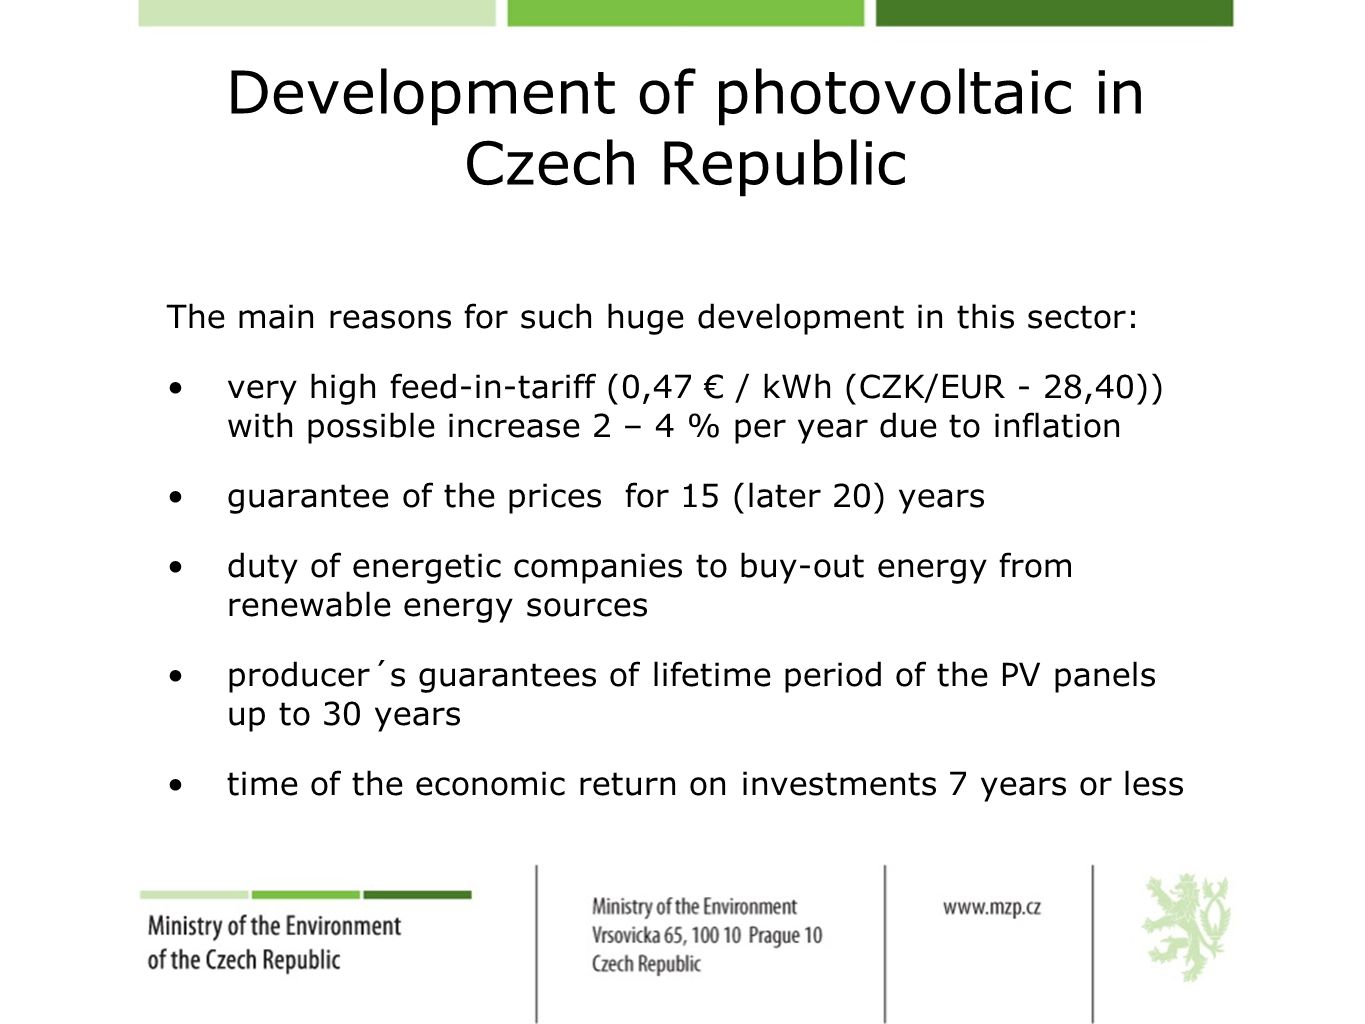 Development of photovoltaic in Czech Republic The main reasons for such huge development in this sector: very high feed-in-tariff (0,47 € / kWh (CZK/EUR - 28,40)) with possible increase 2 – 4 % per year due to inflation guarantee of the prices for 15 (later 20) years duty of energetic companies to buy-out energy from renewable energy sources producer´s guarantees of lifetime period of the PV panels up to 30 years time of the economic return on investments 7 years or less